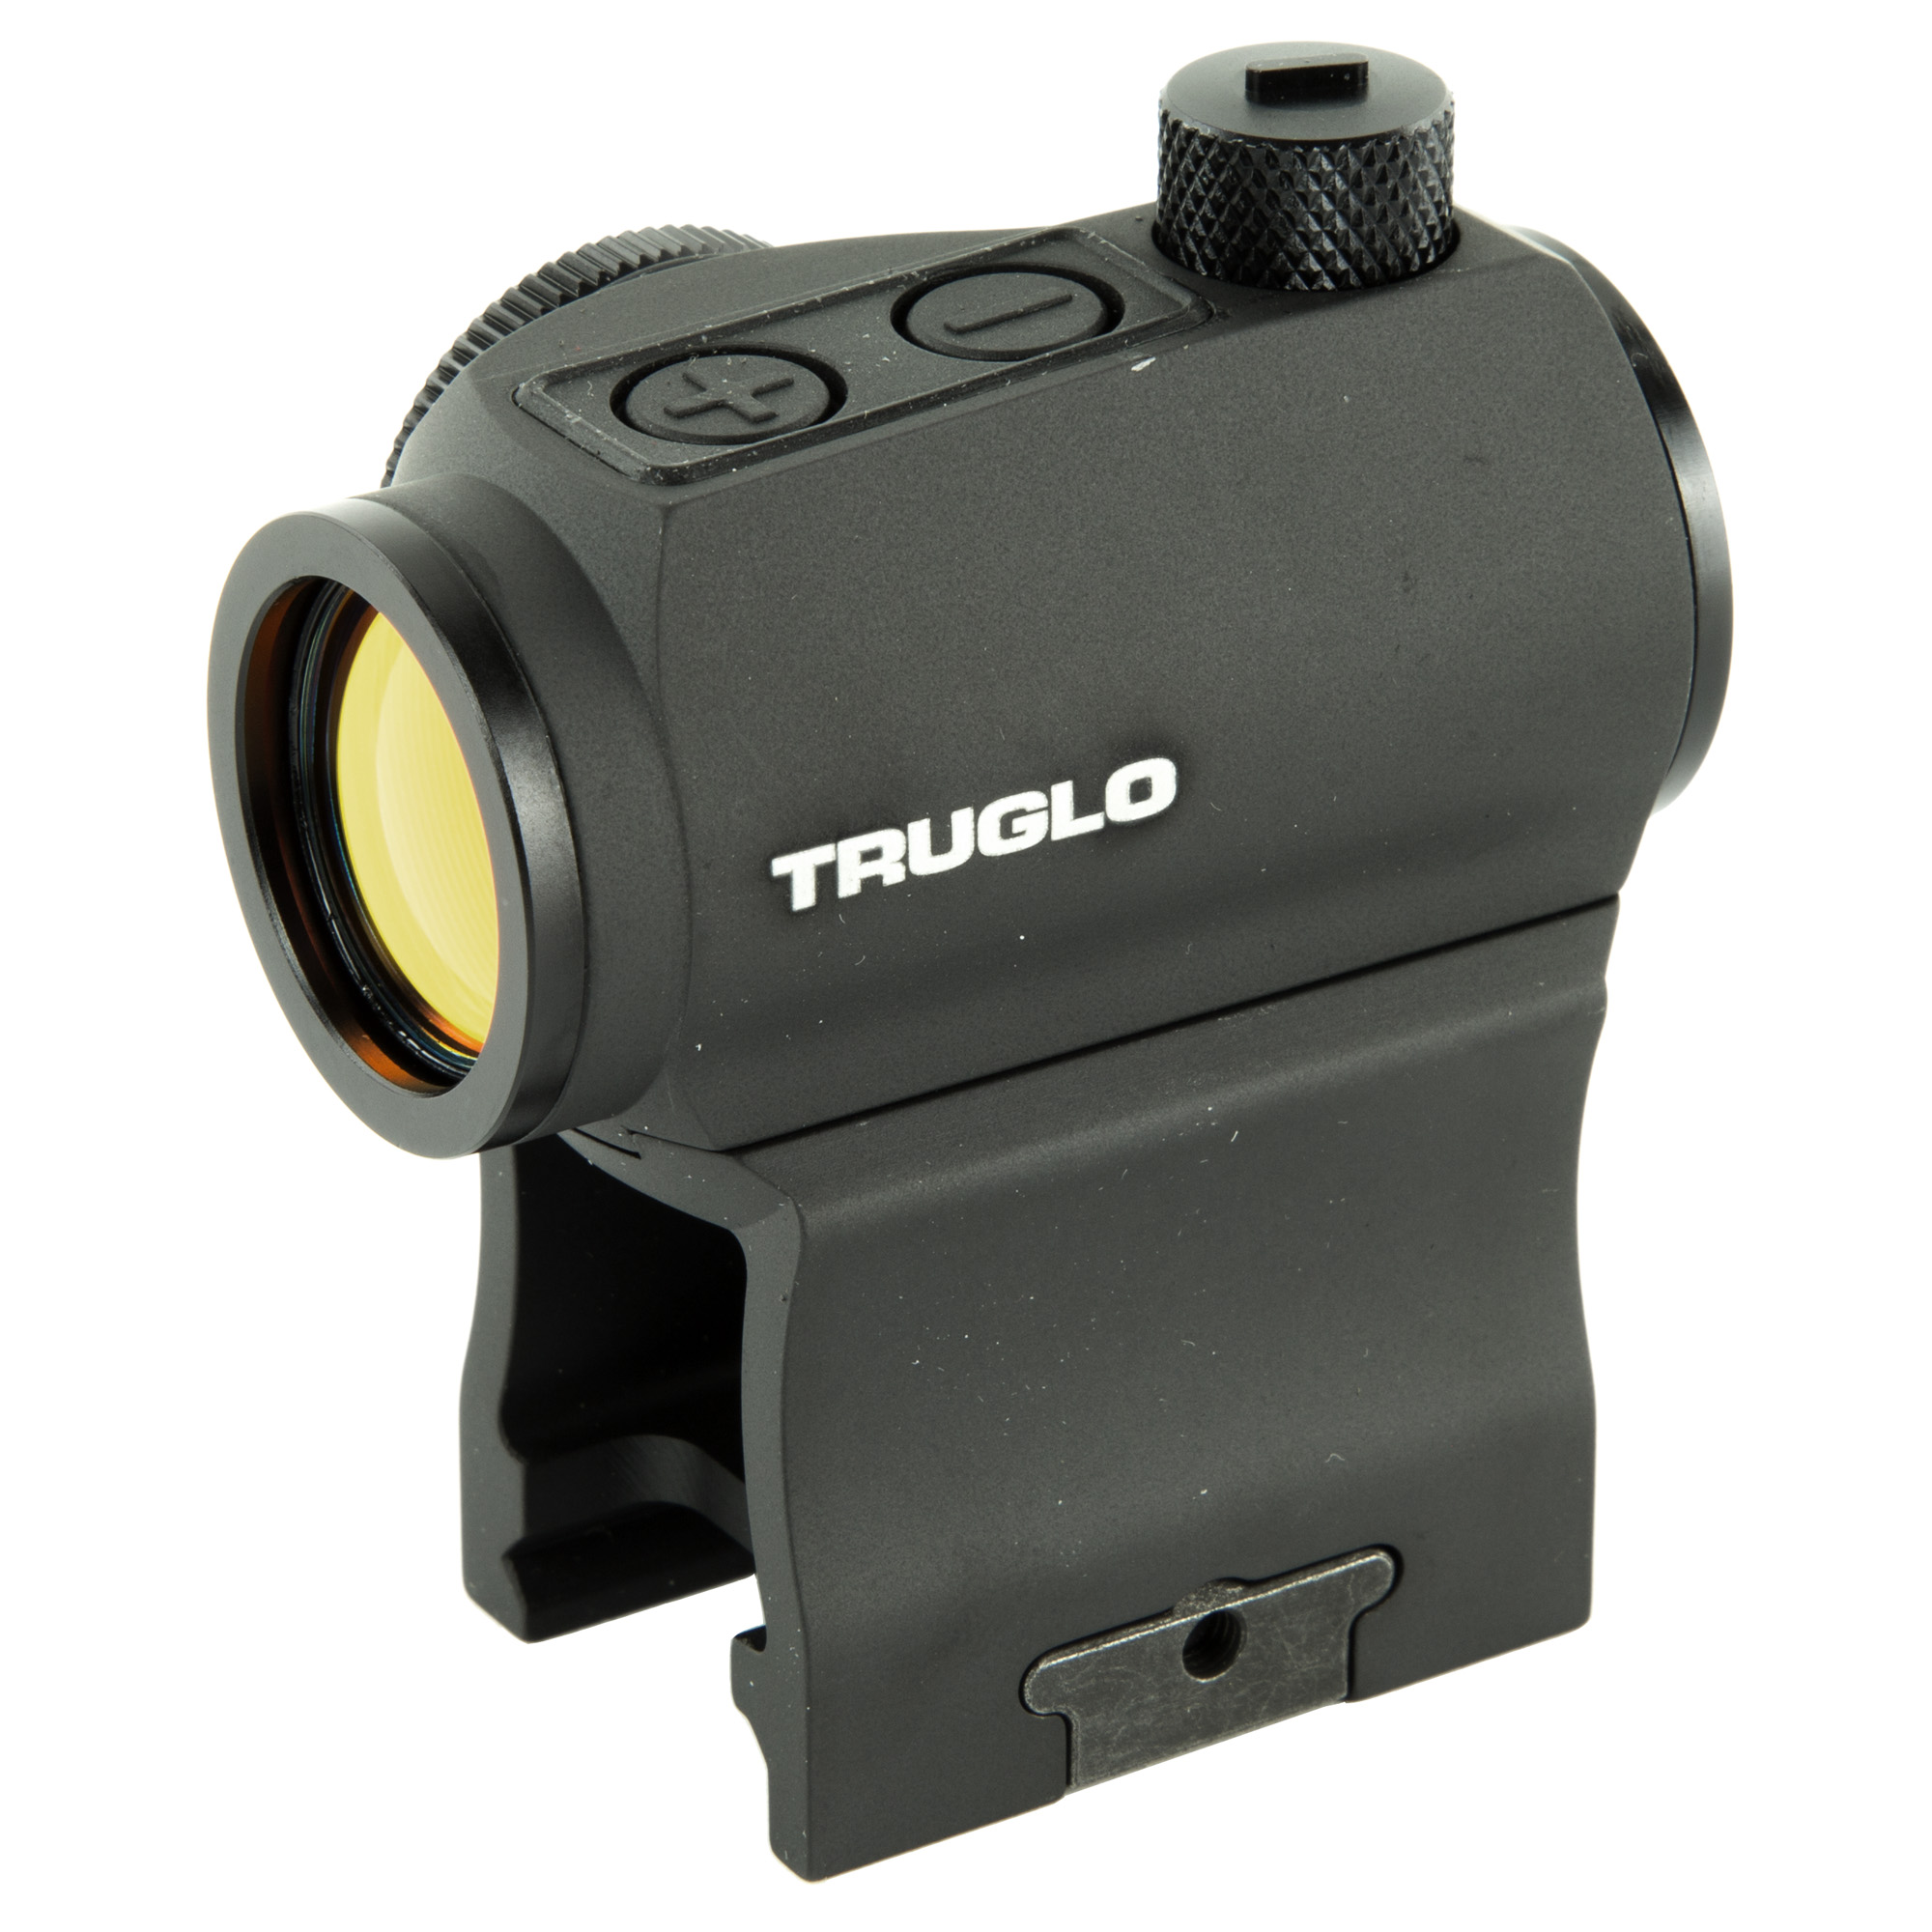 """With included high and low mounting bases"""" and the now available quick-detach mounting bases"""" TRUTEC(TM) 20mm is the go-to dot optic for nearly any weapon system. Compact and lightweight"""" TRUTEC 20mm is ready for anything with a motion-sensitive auto-on and a programmable auto-off for years of reliable battery life. Coated optics and a precise 2-MOA dot provide a bright"""" crisp image for superior accuracy."""